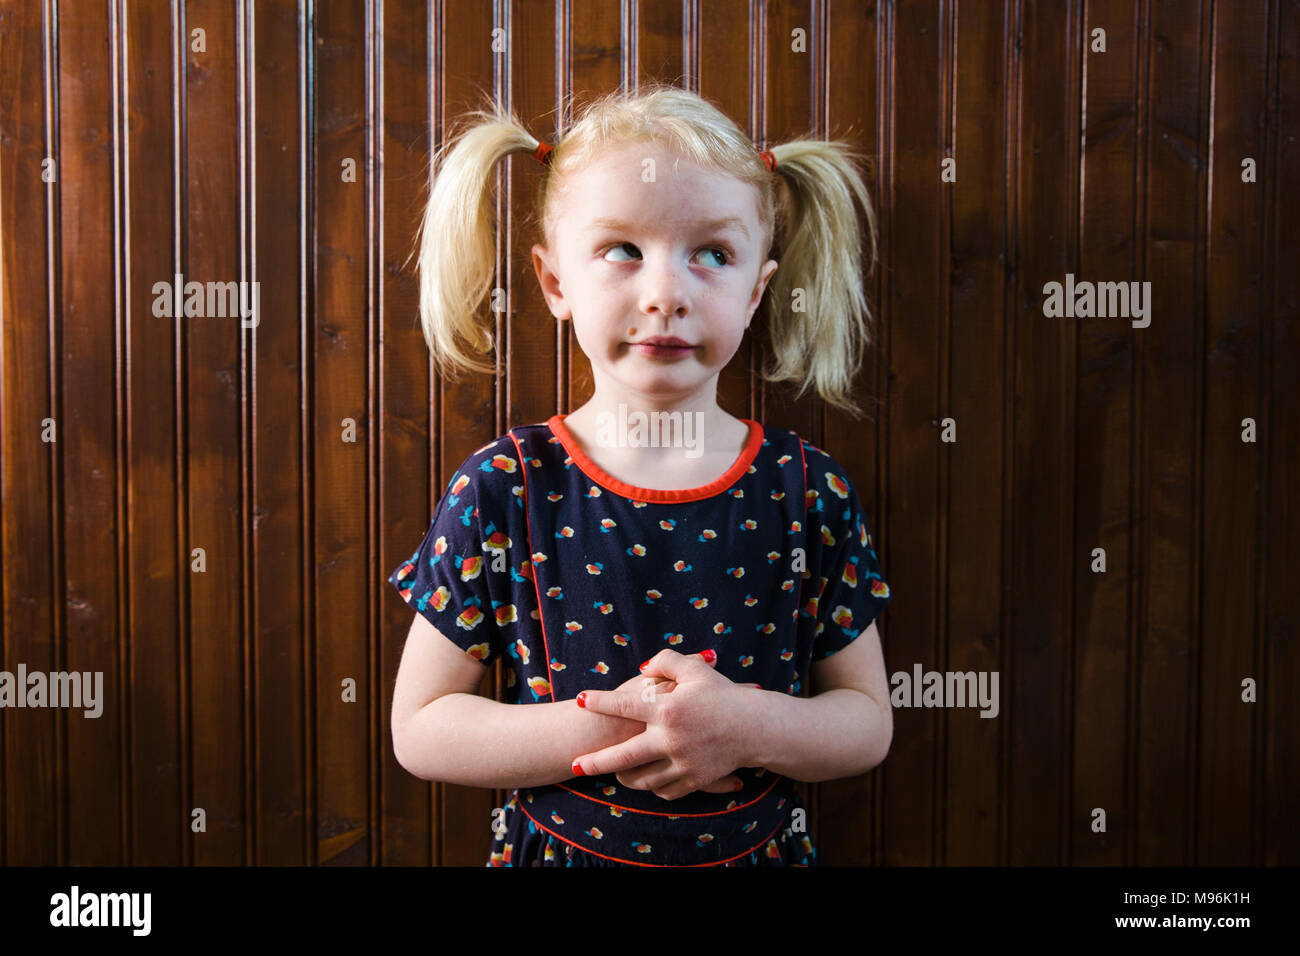 Girl with pigtails pulling faces - Stock Image